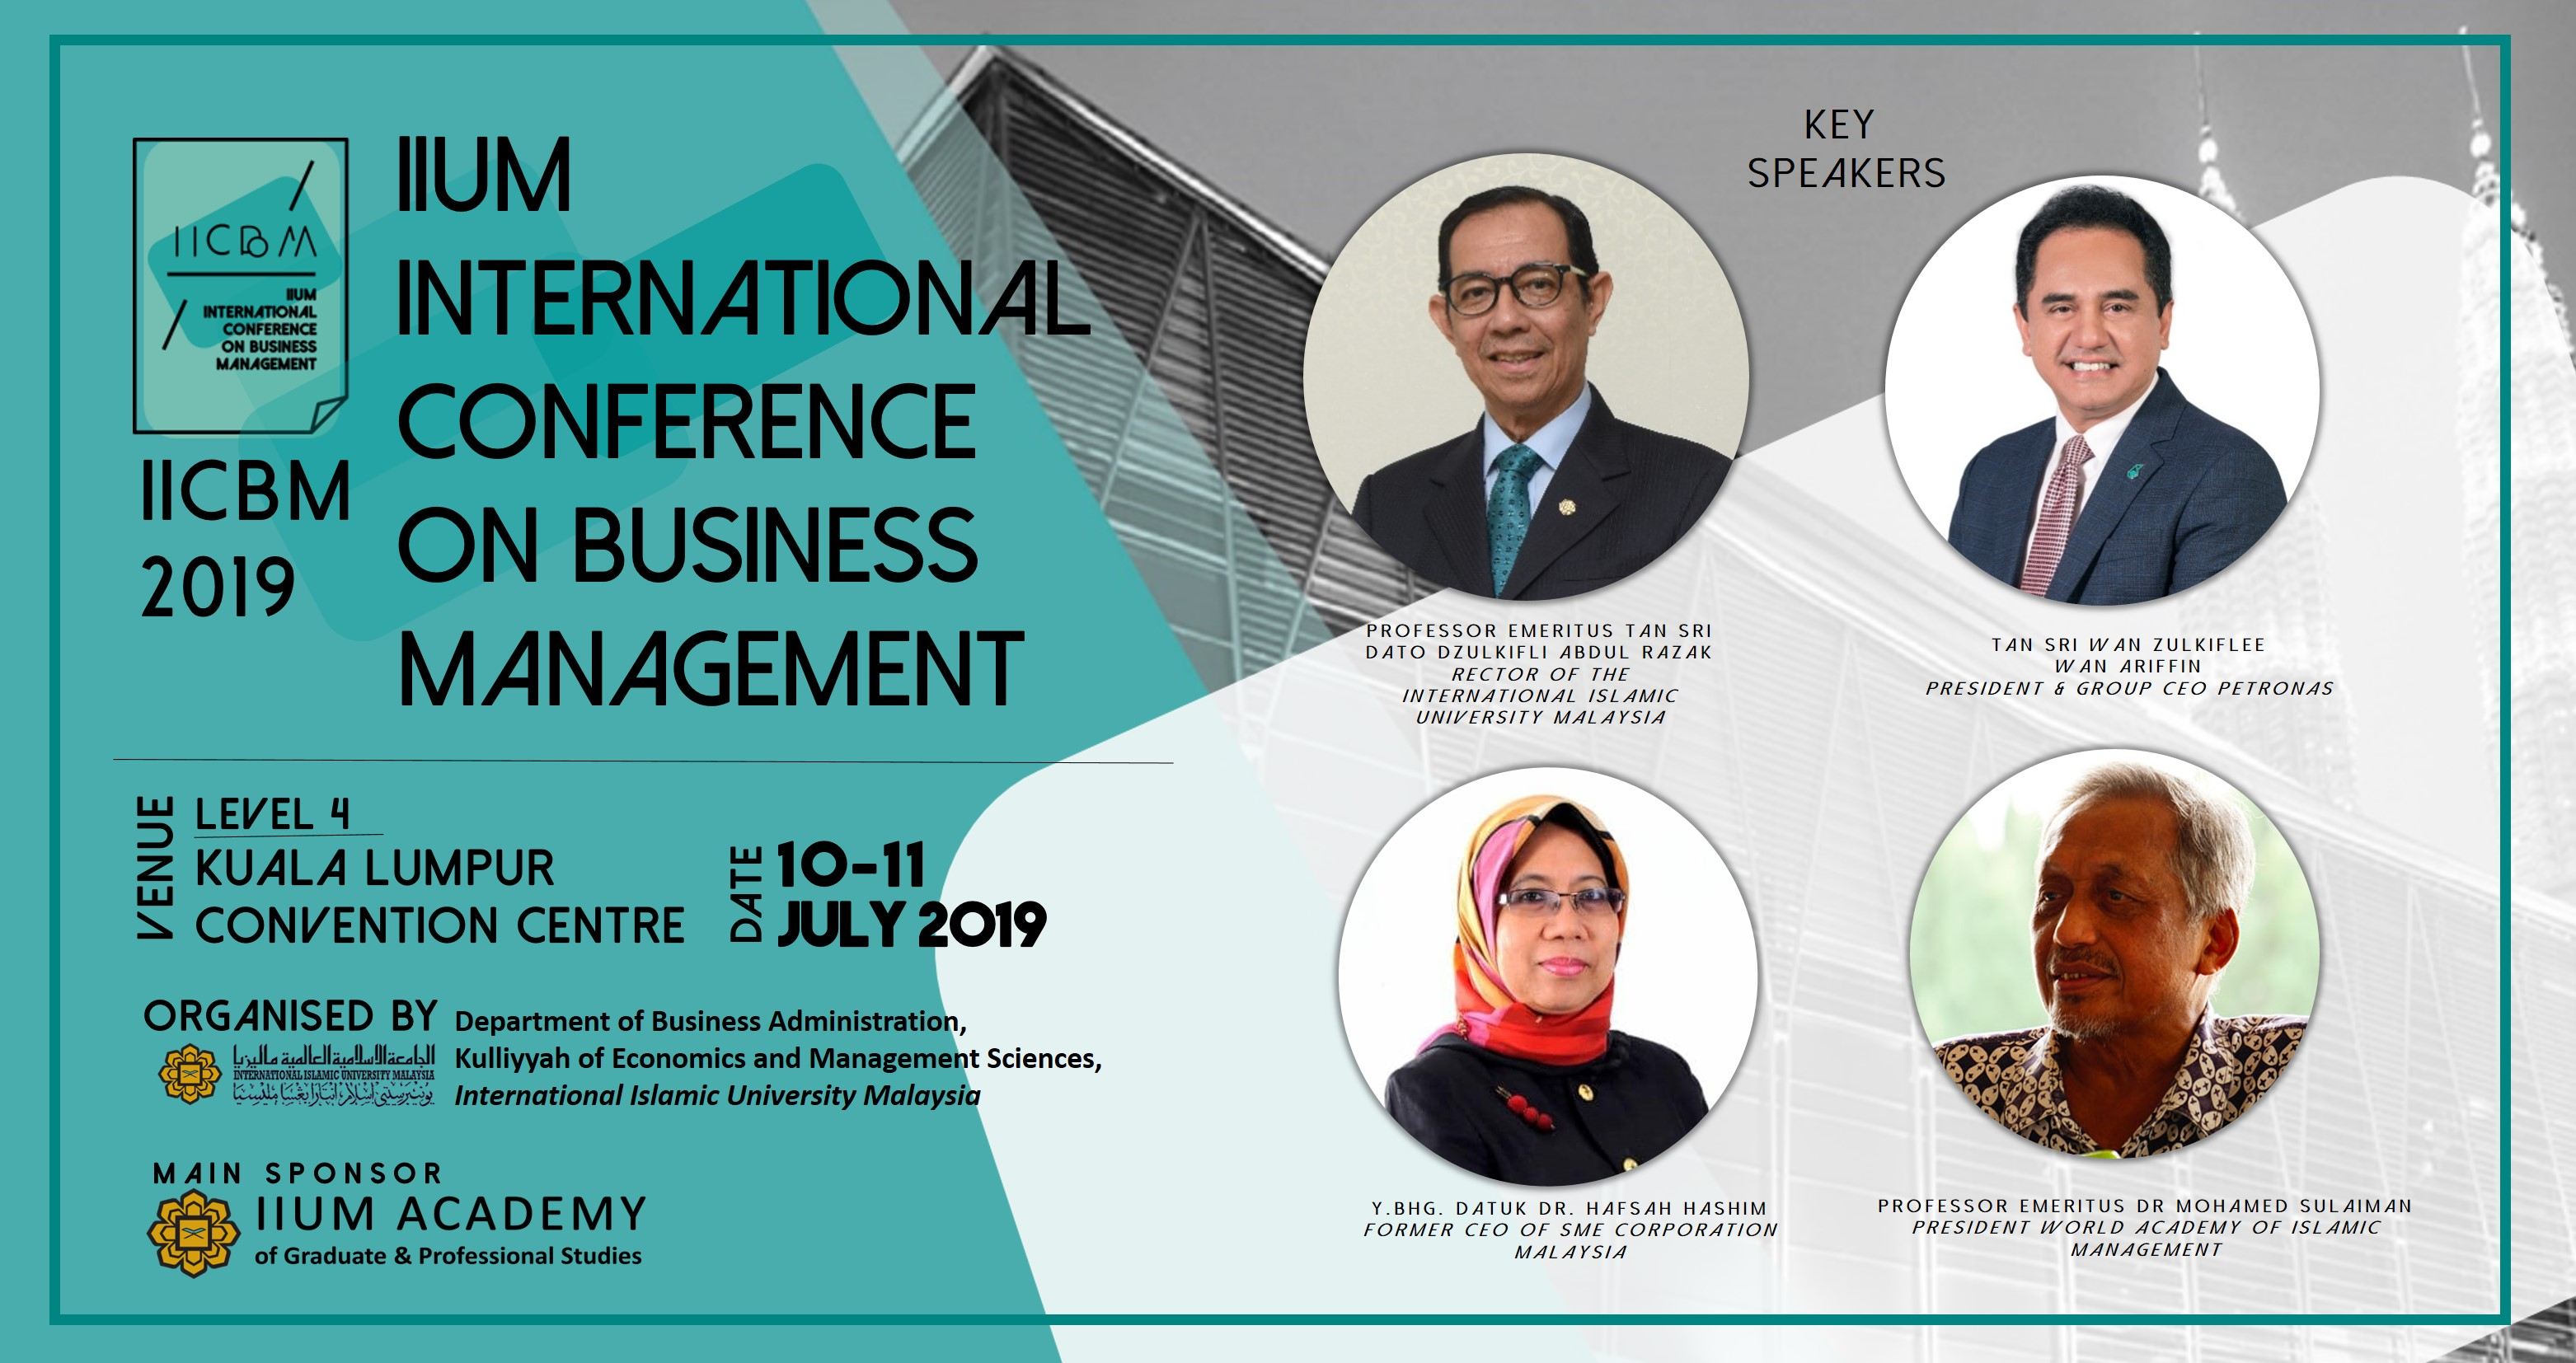 IIUM International Conference on Business Management